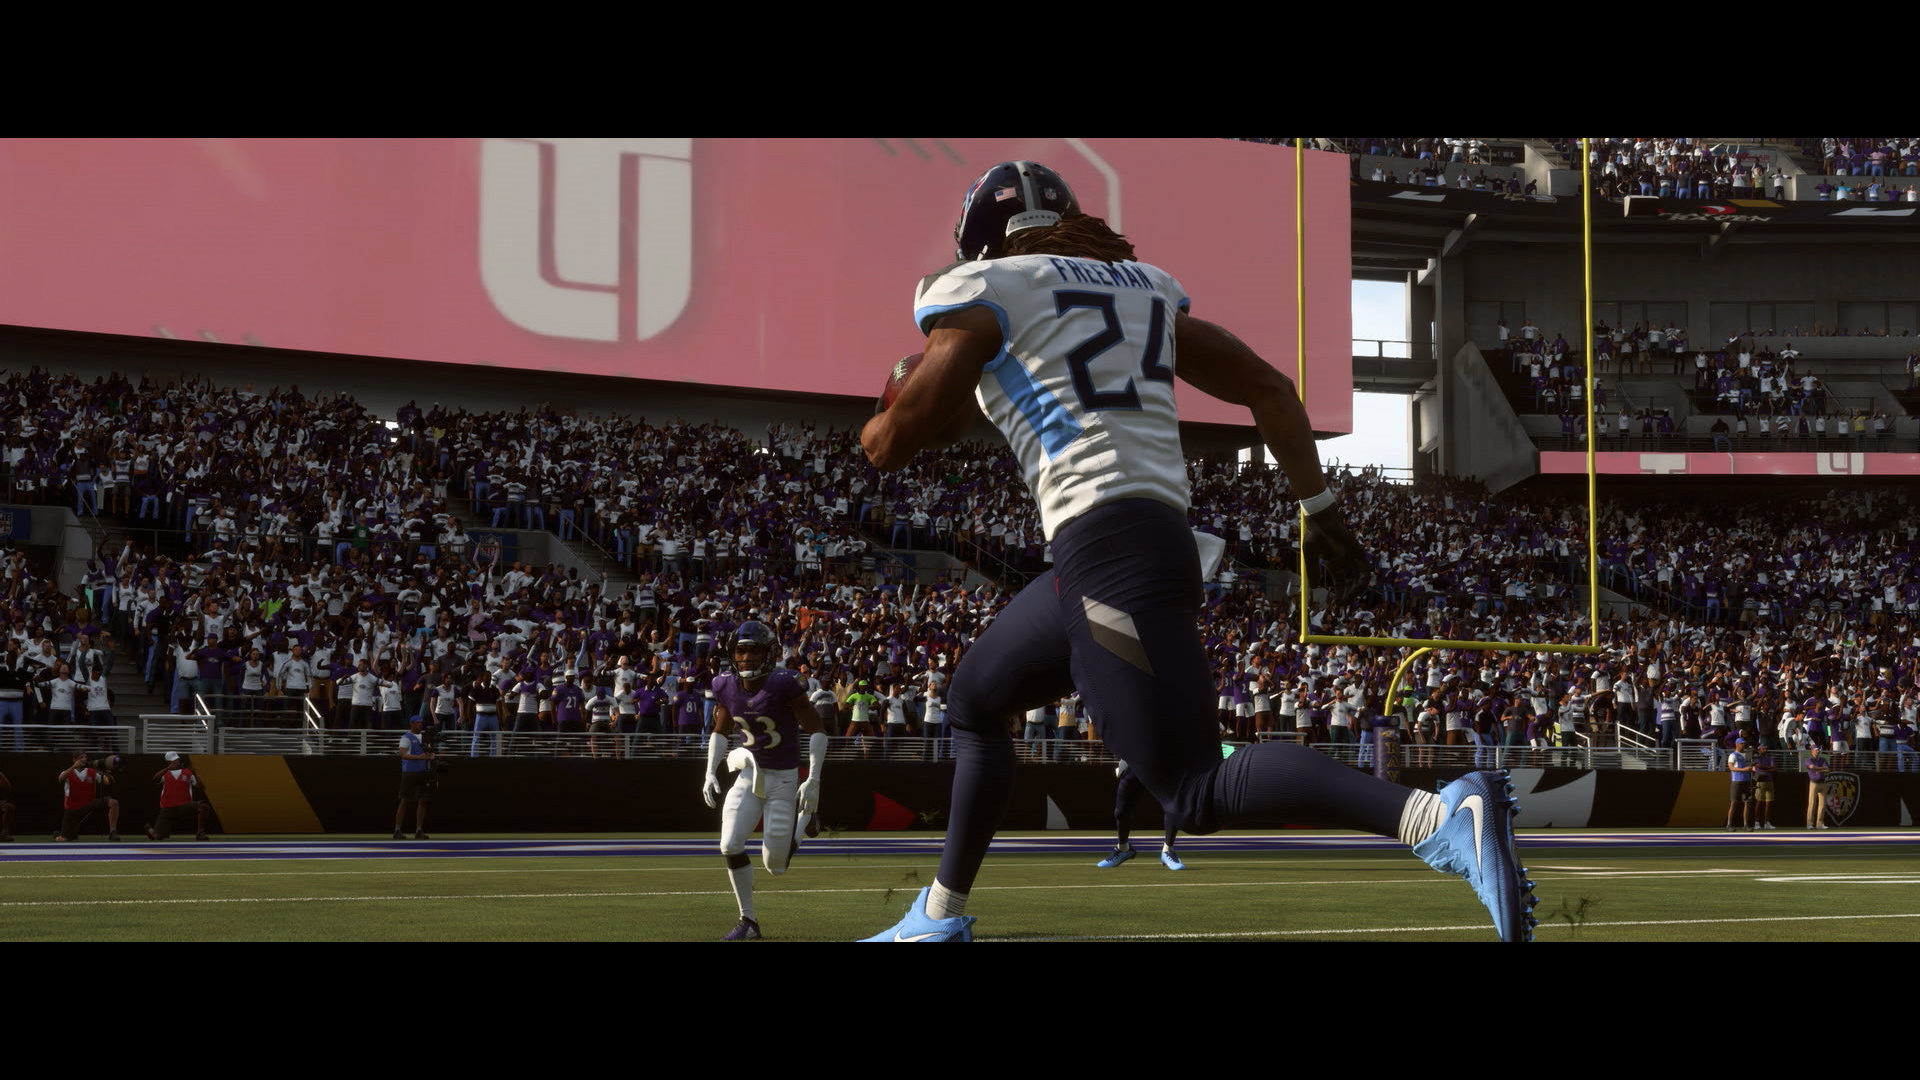 - madden19 - most feared (commercial)client: ea sportsproducer: troy smithpost-producer: natalie clevelandeditor: matt cartereditorial: final cut